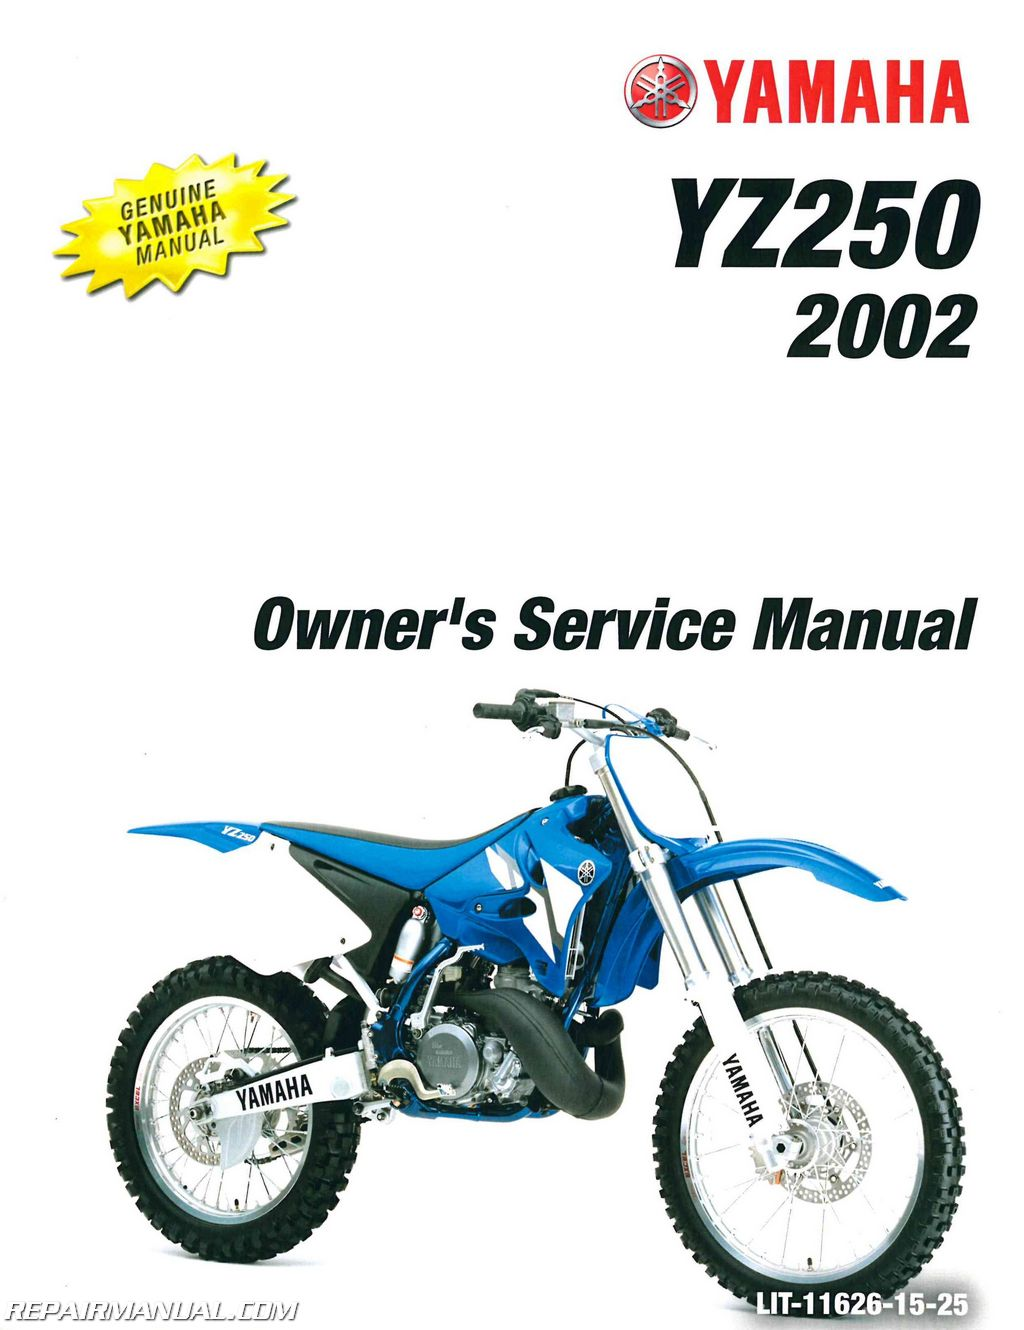 yamaha yz250 engine diagram repair yamaha pw80 engine. Black Bedroom Furniture Sets. Home Design Ideas